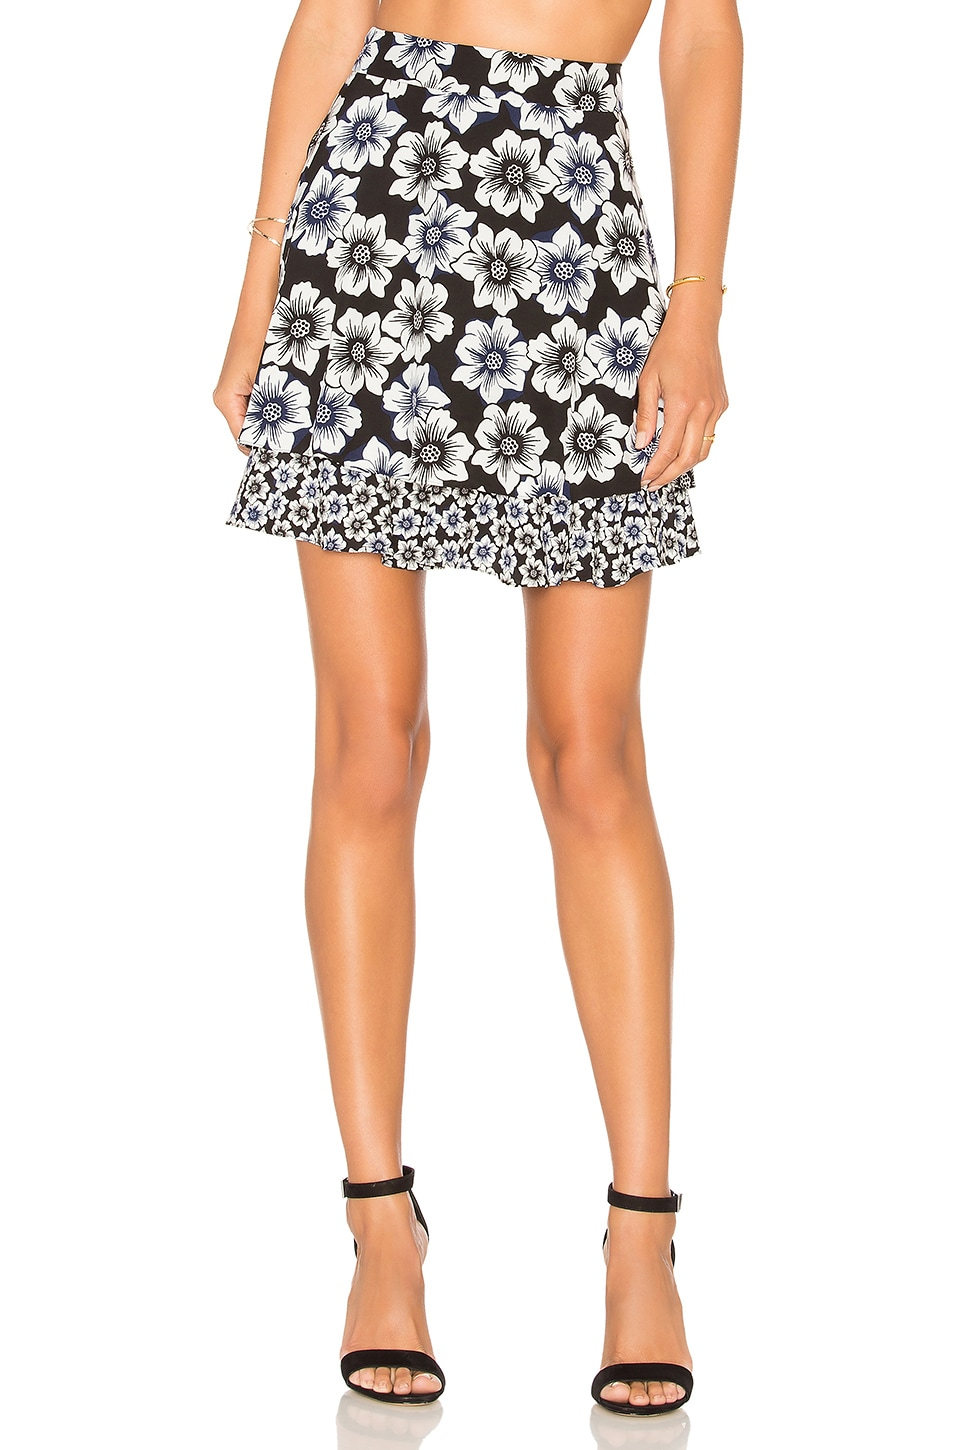 kate spade new york Hollyhock Double Layer Skirt in Black